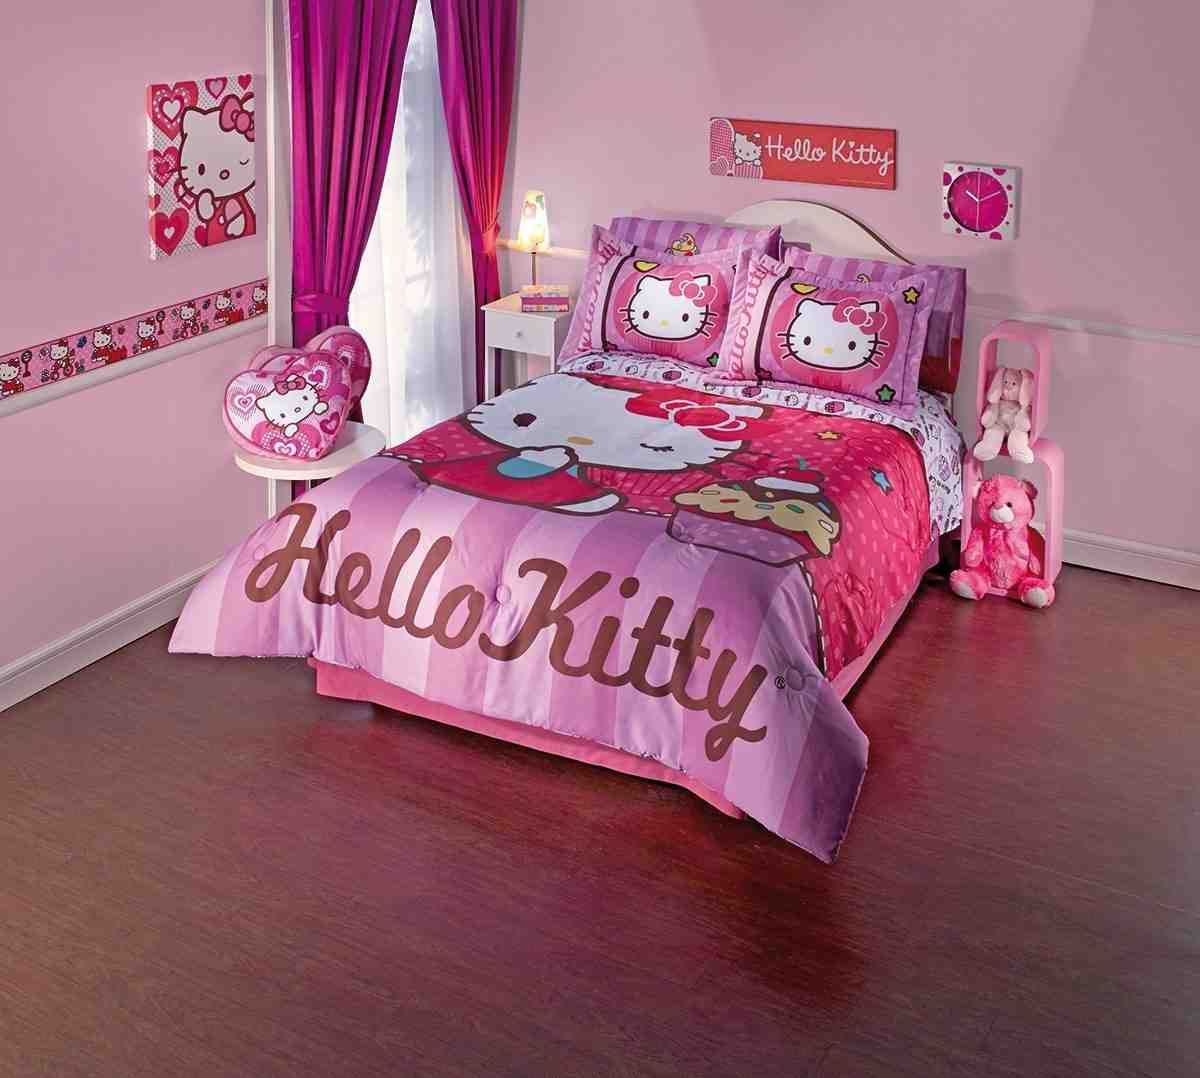 Hello Kitty Twin Comforter Set Hello Kitty Bedroom Hello Kitty